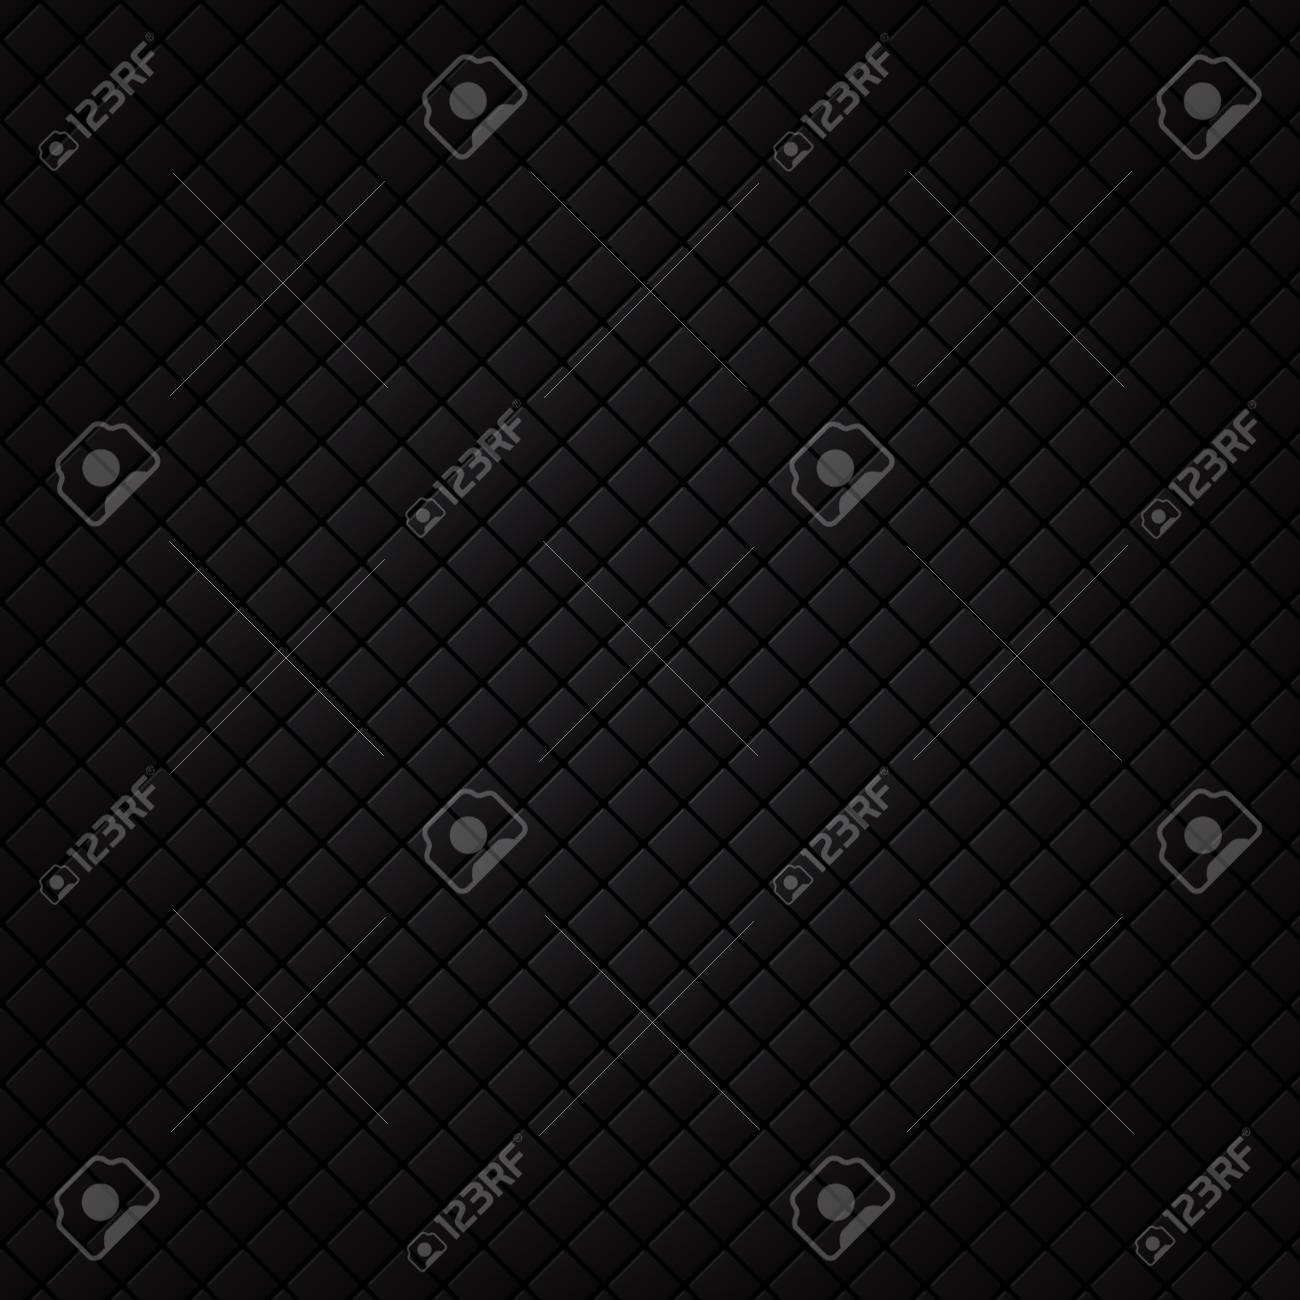 Sofa Texture Vector Black Square Pattern Luxury Sofa Background And Texture Vector